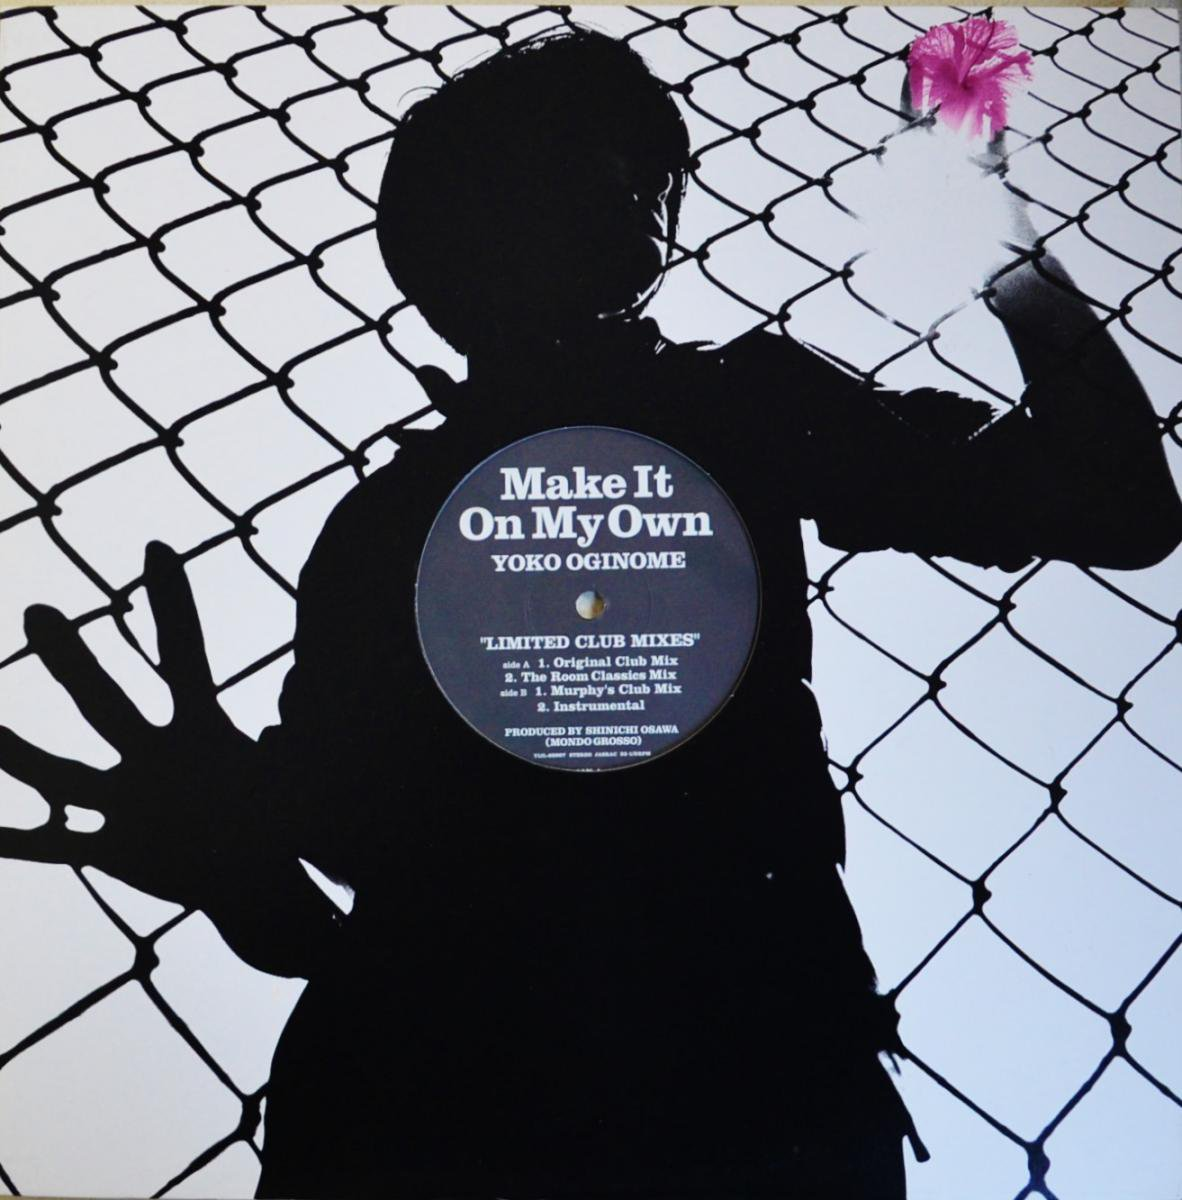 荻野目洋子 YOKO OGINOME / MAKE IT ON MY OWN - LIMITED CLUB MIXES (12